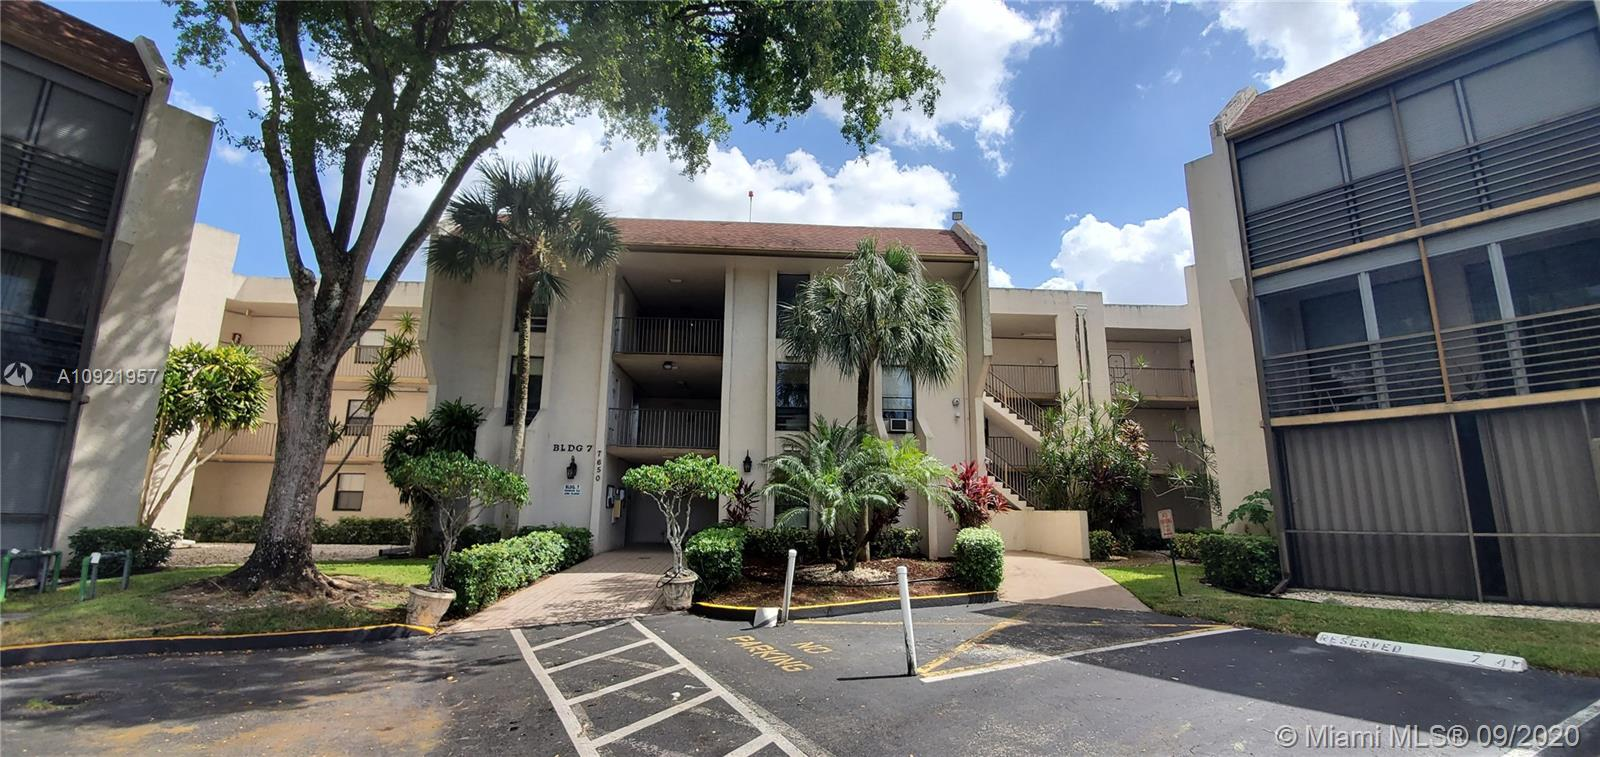 OWNER WANTS A DEAL!! Come See This Fabulous Unit With A Great View Of The Golf Course & Water. Features Include A Newer A/C (In And Out), Big Eat-In Kitchen, Big Living And Bed Room, Screened Patio. Furniture / Dishes Can Stay If The Buyer Is Interested, Excluding The Bedroom Set And A Couple Chairs (Make Offer). This Has A Washer / Dryer In Unit (Current Washer / Dryer Sold As Is) Or Use The Laundry Room A Few Doors Away. This Unit Is Very Convenient To The Elevator. NO CAR NECESSARY... You Can Walk To The Grocery Store, It's Easy To Get Anywhere With The Bus Stop Directly In Front Of Bldg. Walk To Pool.. No Pets, No Lease 1st Year. At Least 1 Occupant Must Be 55+, Water Shutoff Valve Installed (Over $400 Value). Seller May Contribute To Buyers Closing Costs. Hurry.. This Won't Last!!